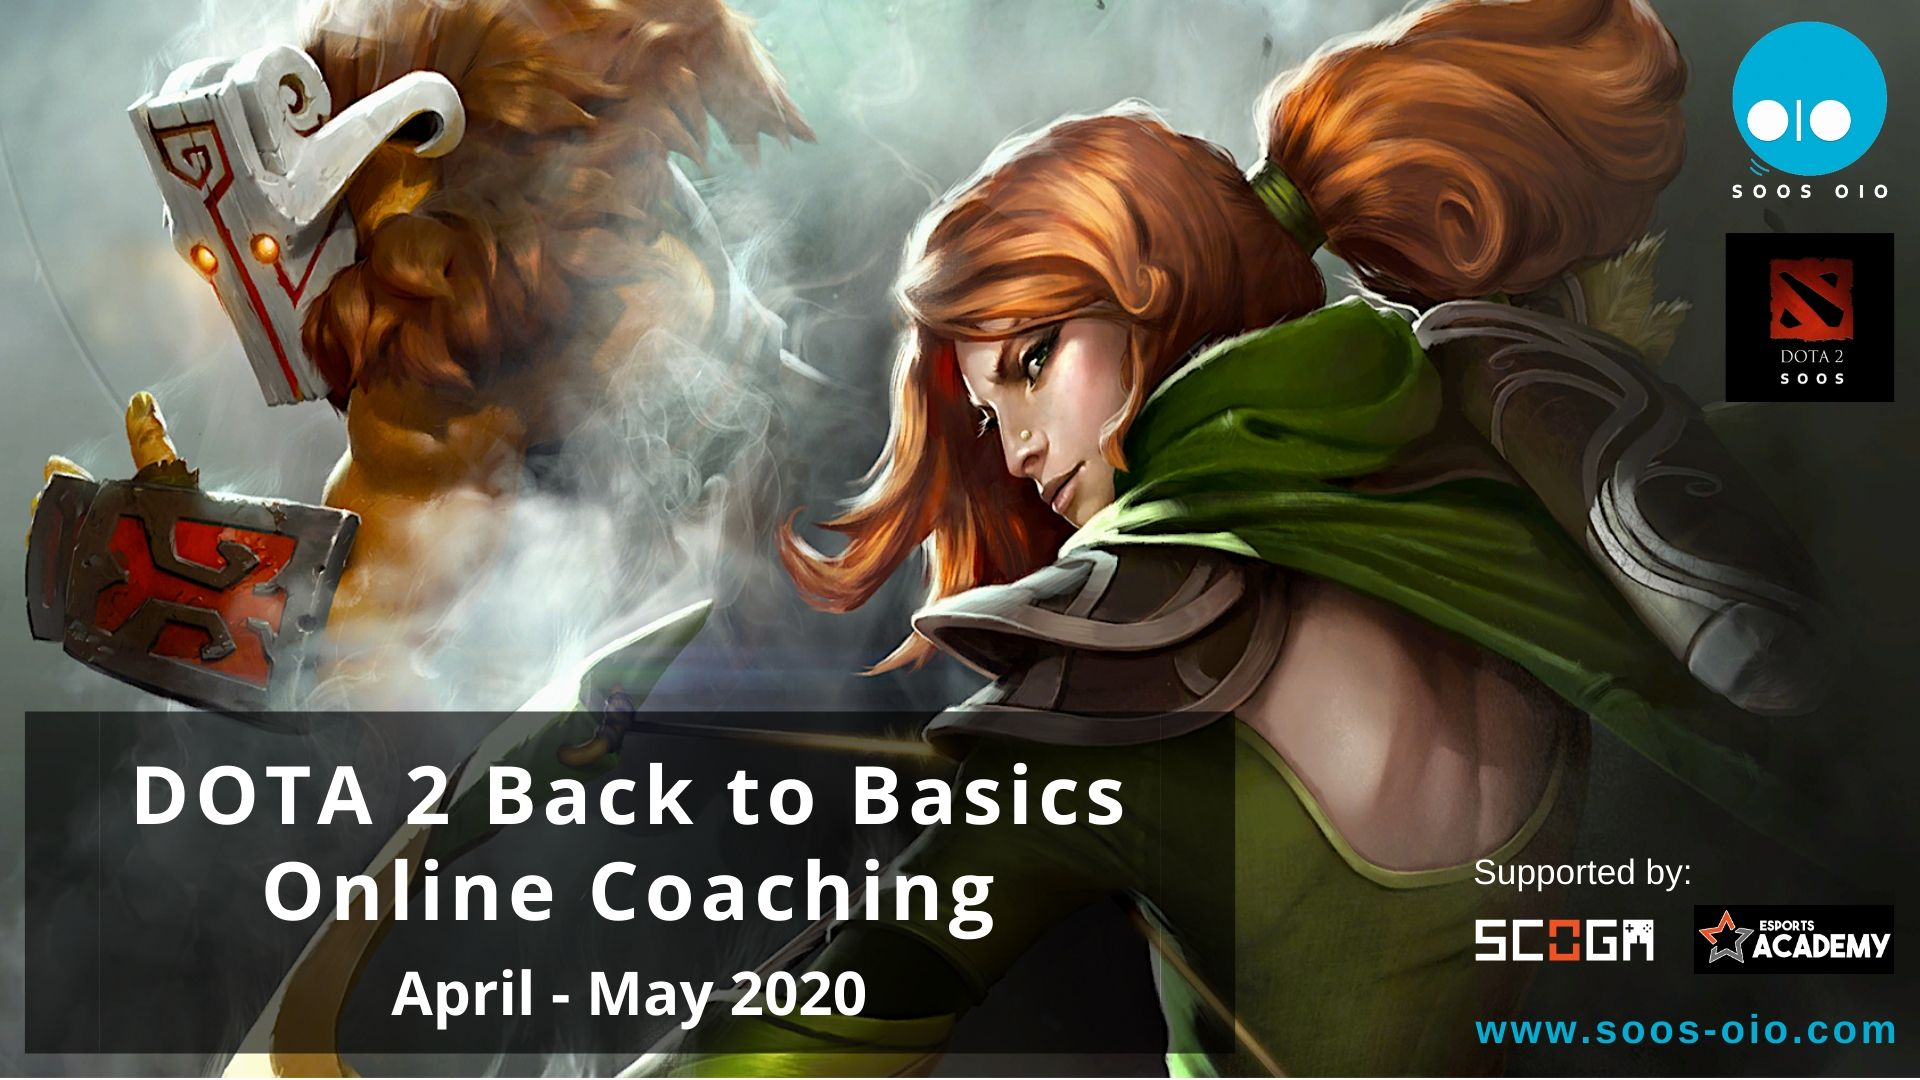 DOTA2 Back to Basics Apr-May20